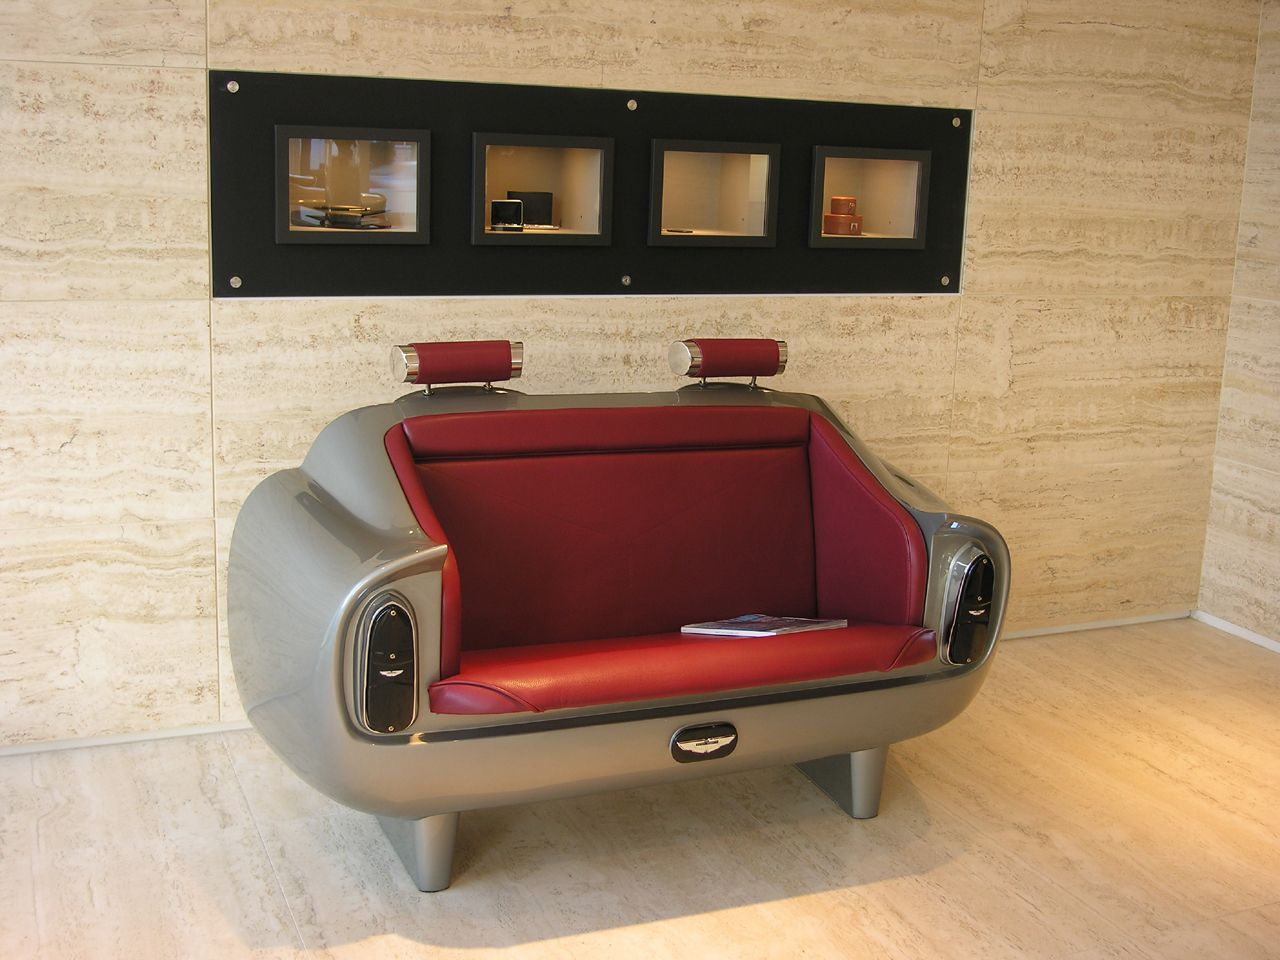 Aston Martin Db6 Couch Limited Edition Richtigteuer De